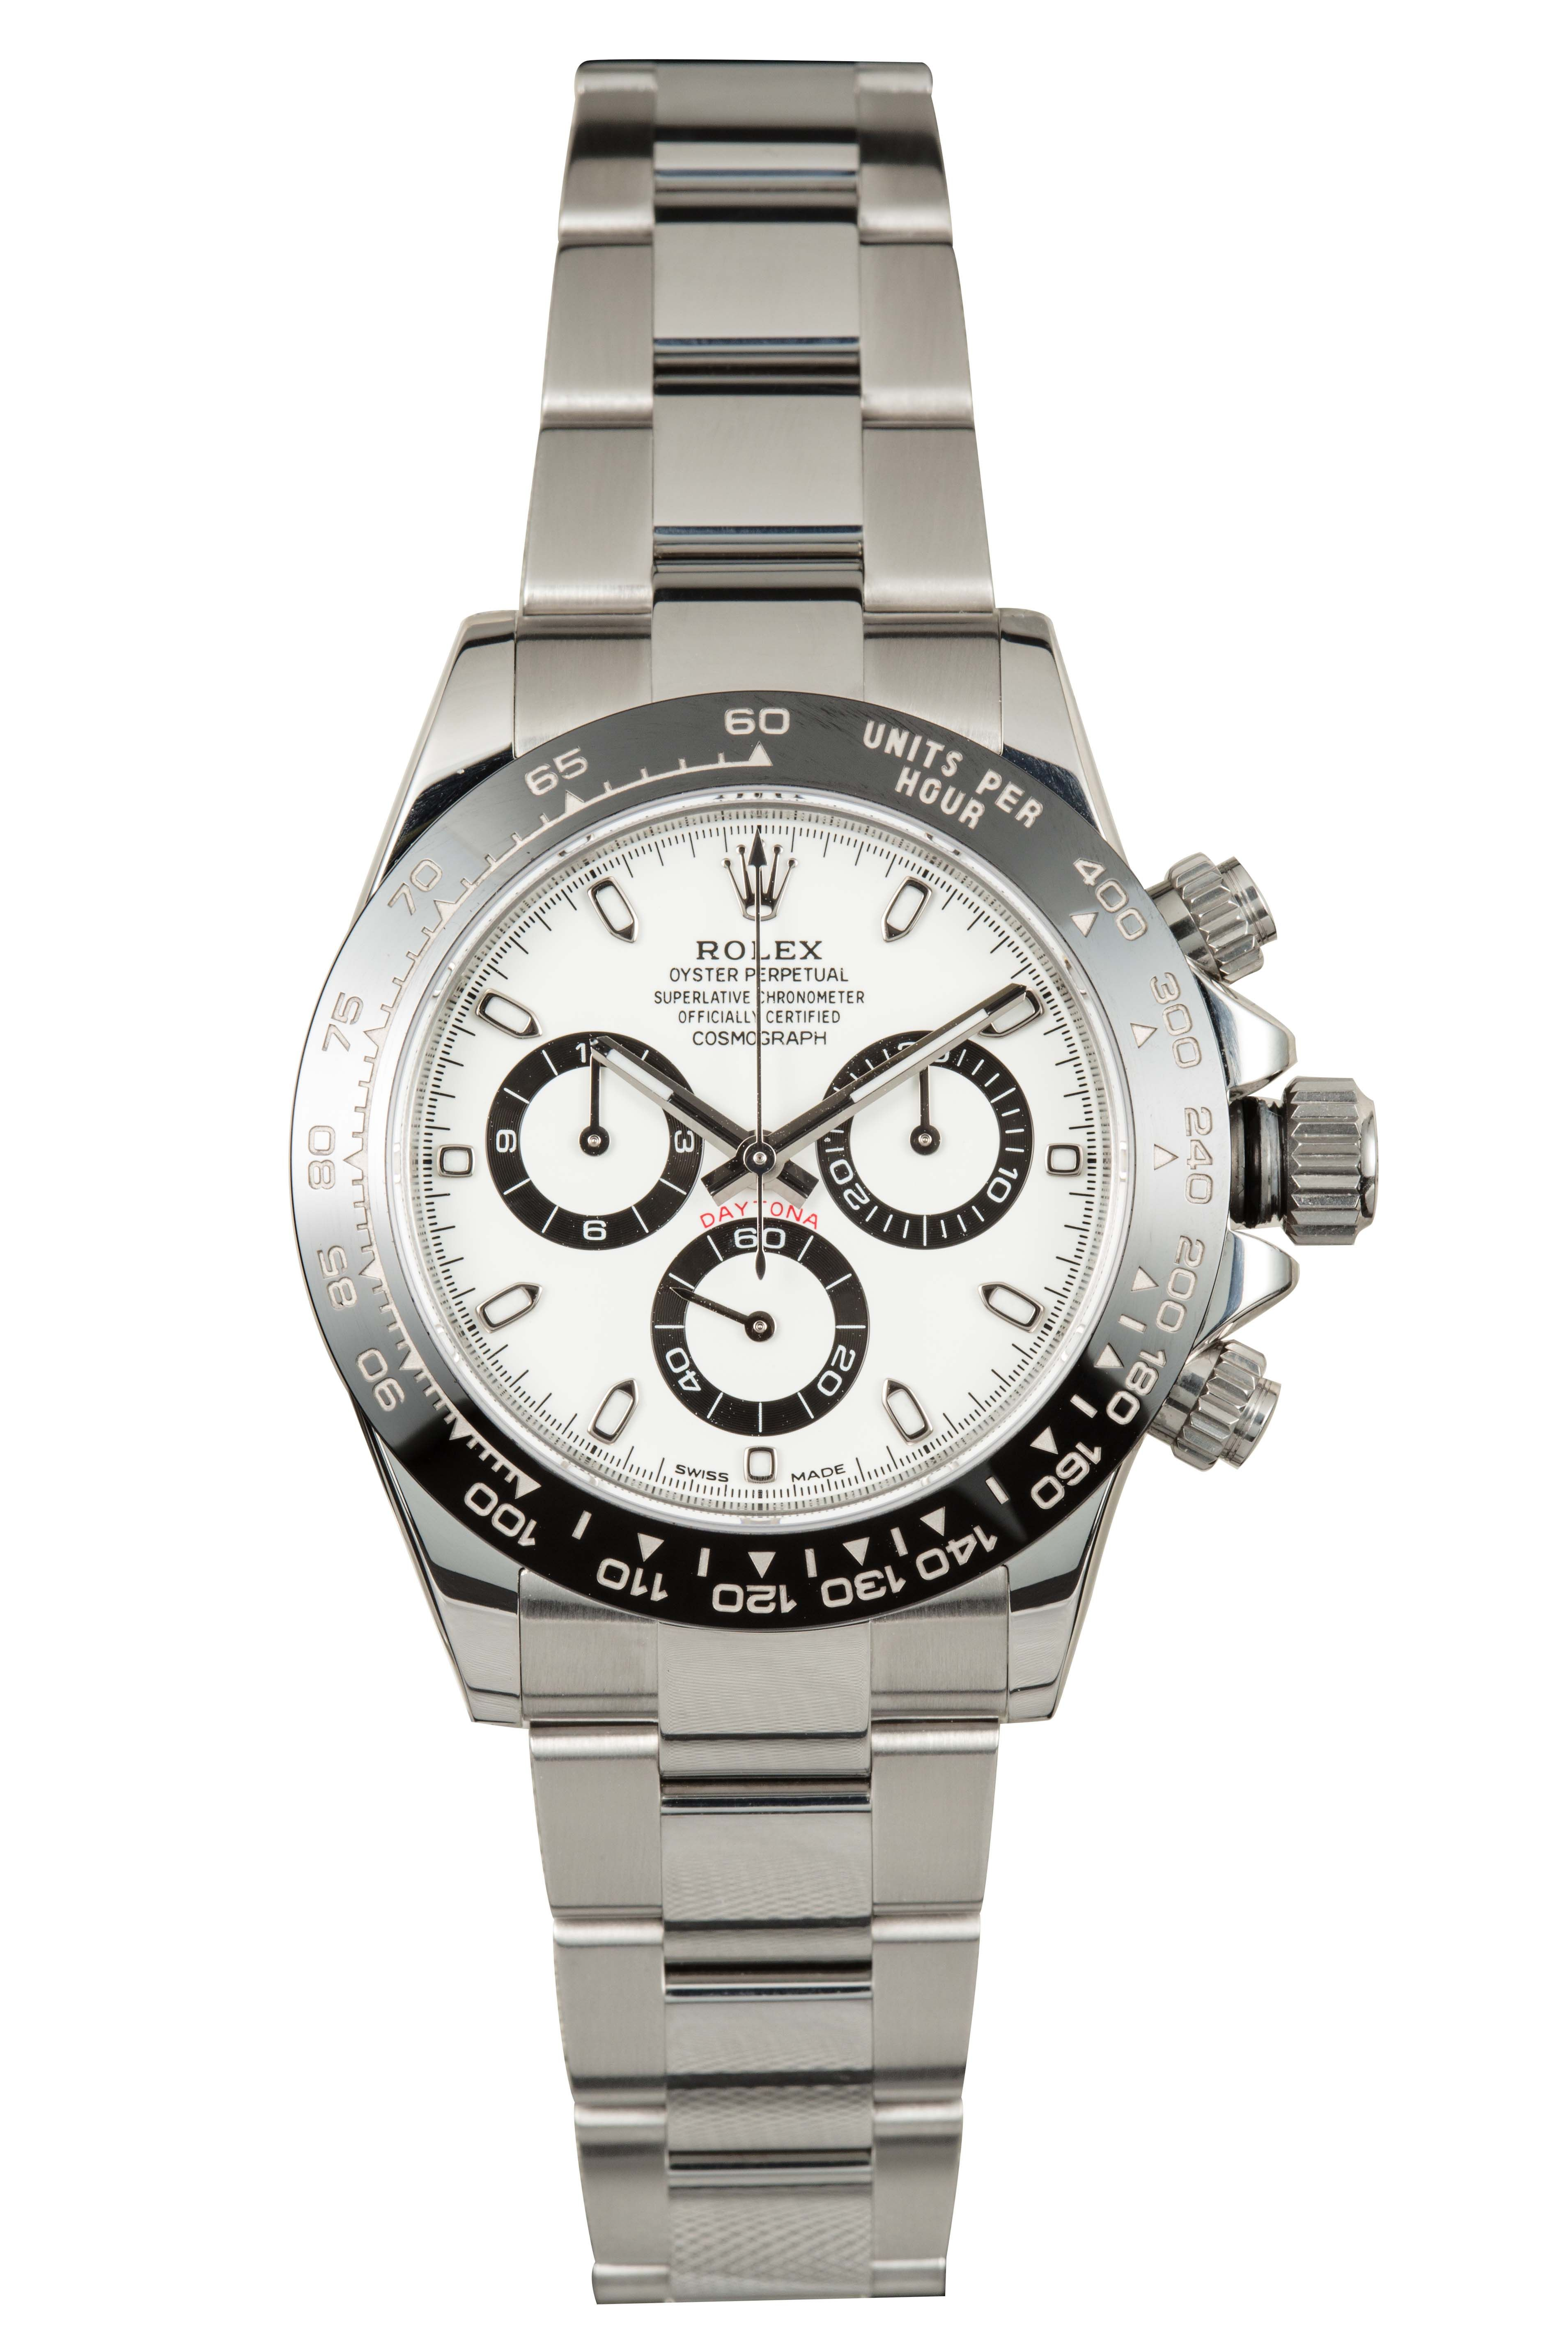 This Rolex Auction Features 13 Super-Collectible Daytona Watches